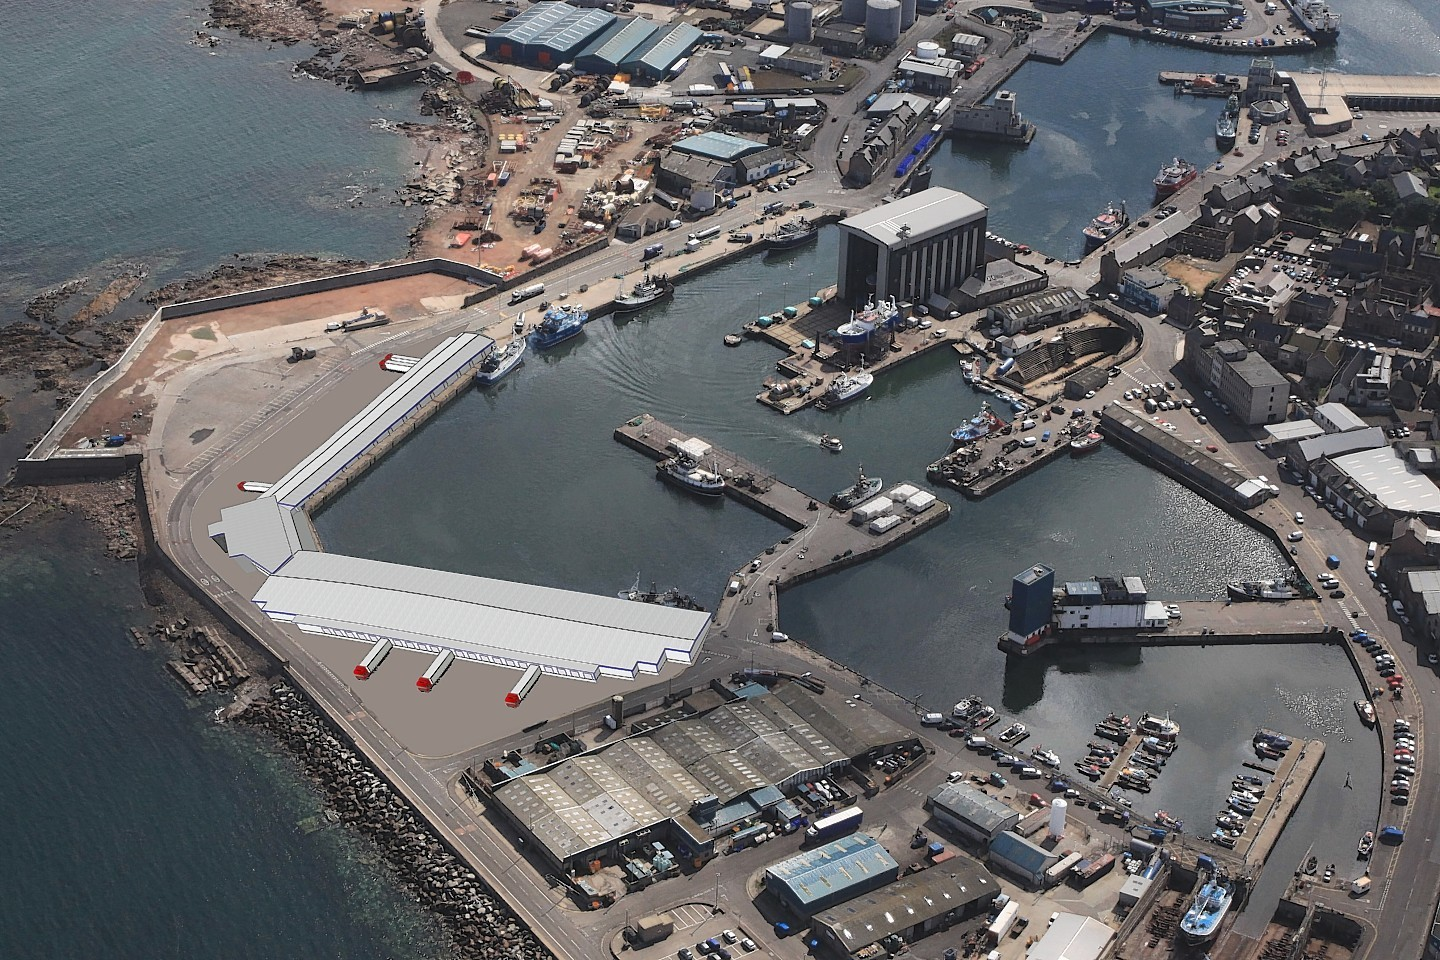 Peterhead harbour and the new buildings planned for it as part of a £500million expansion